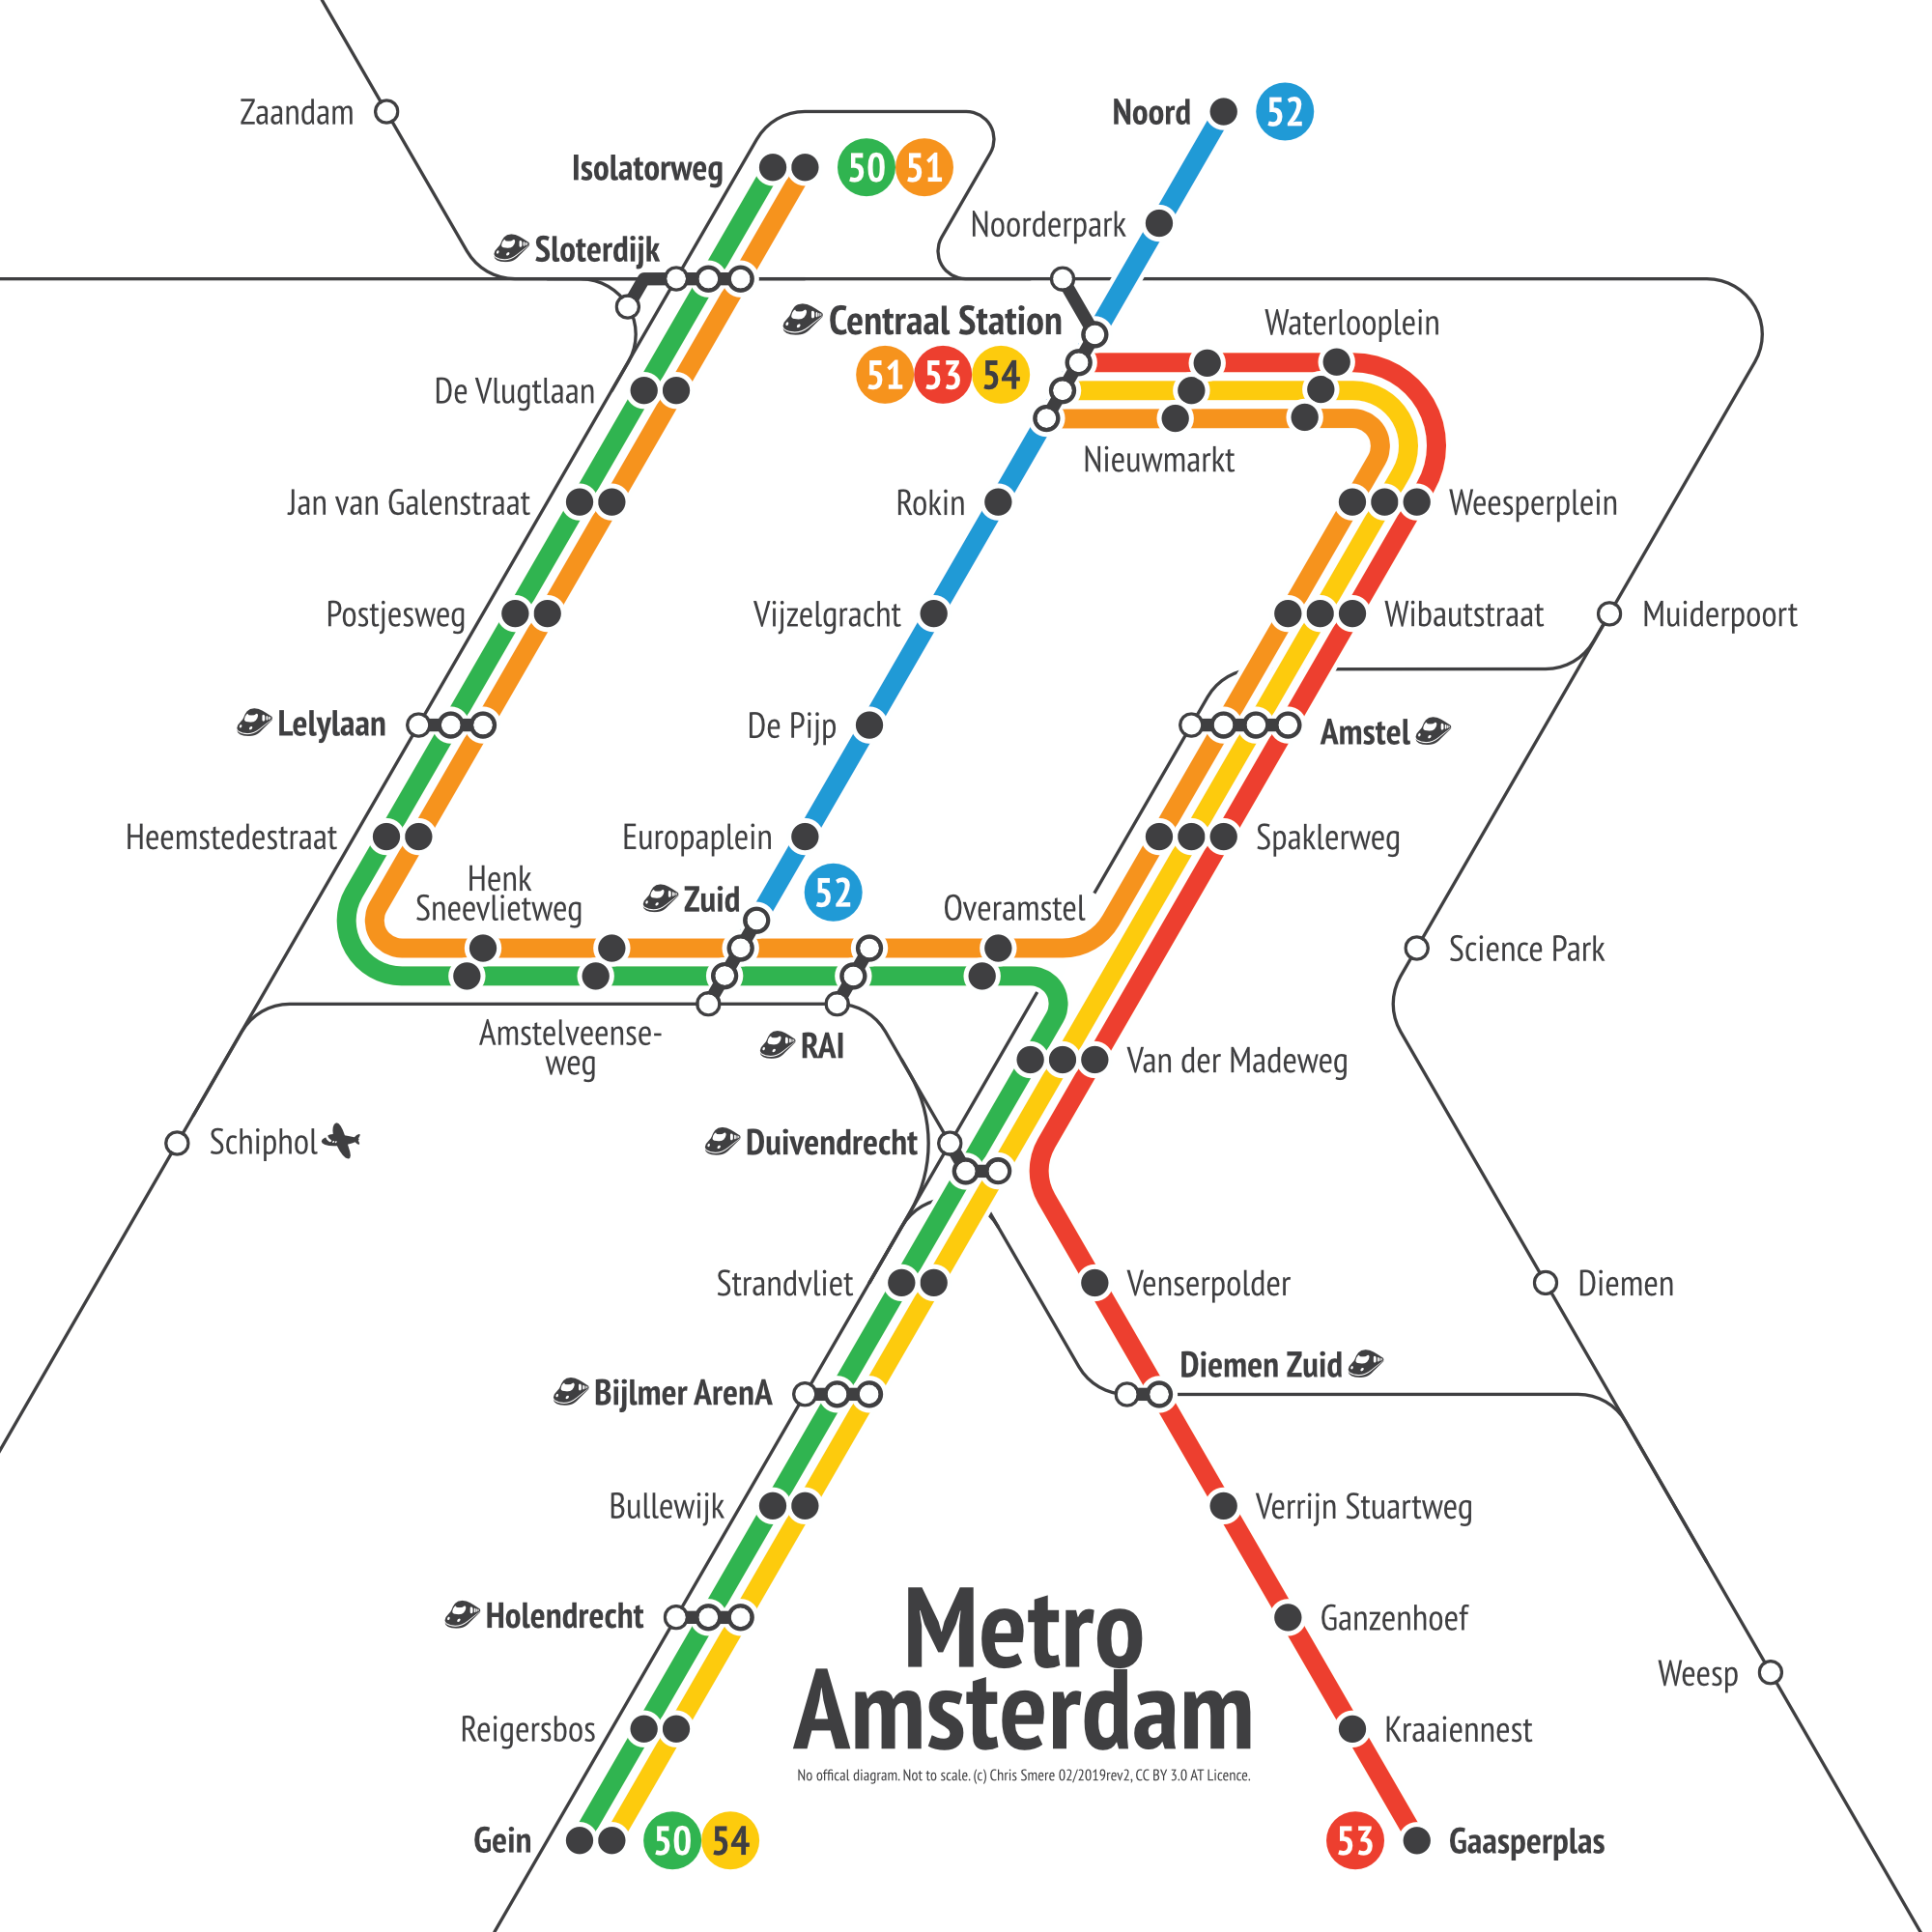 Amsterdam Subway Map.Amsterdam Metro Transit Diagram Share Your Work Affinity Forum